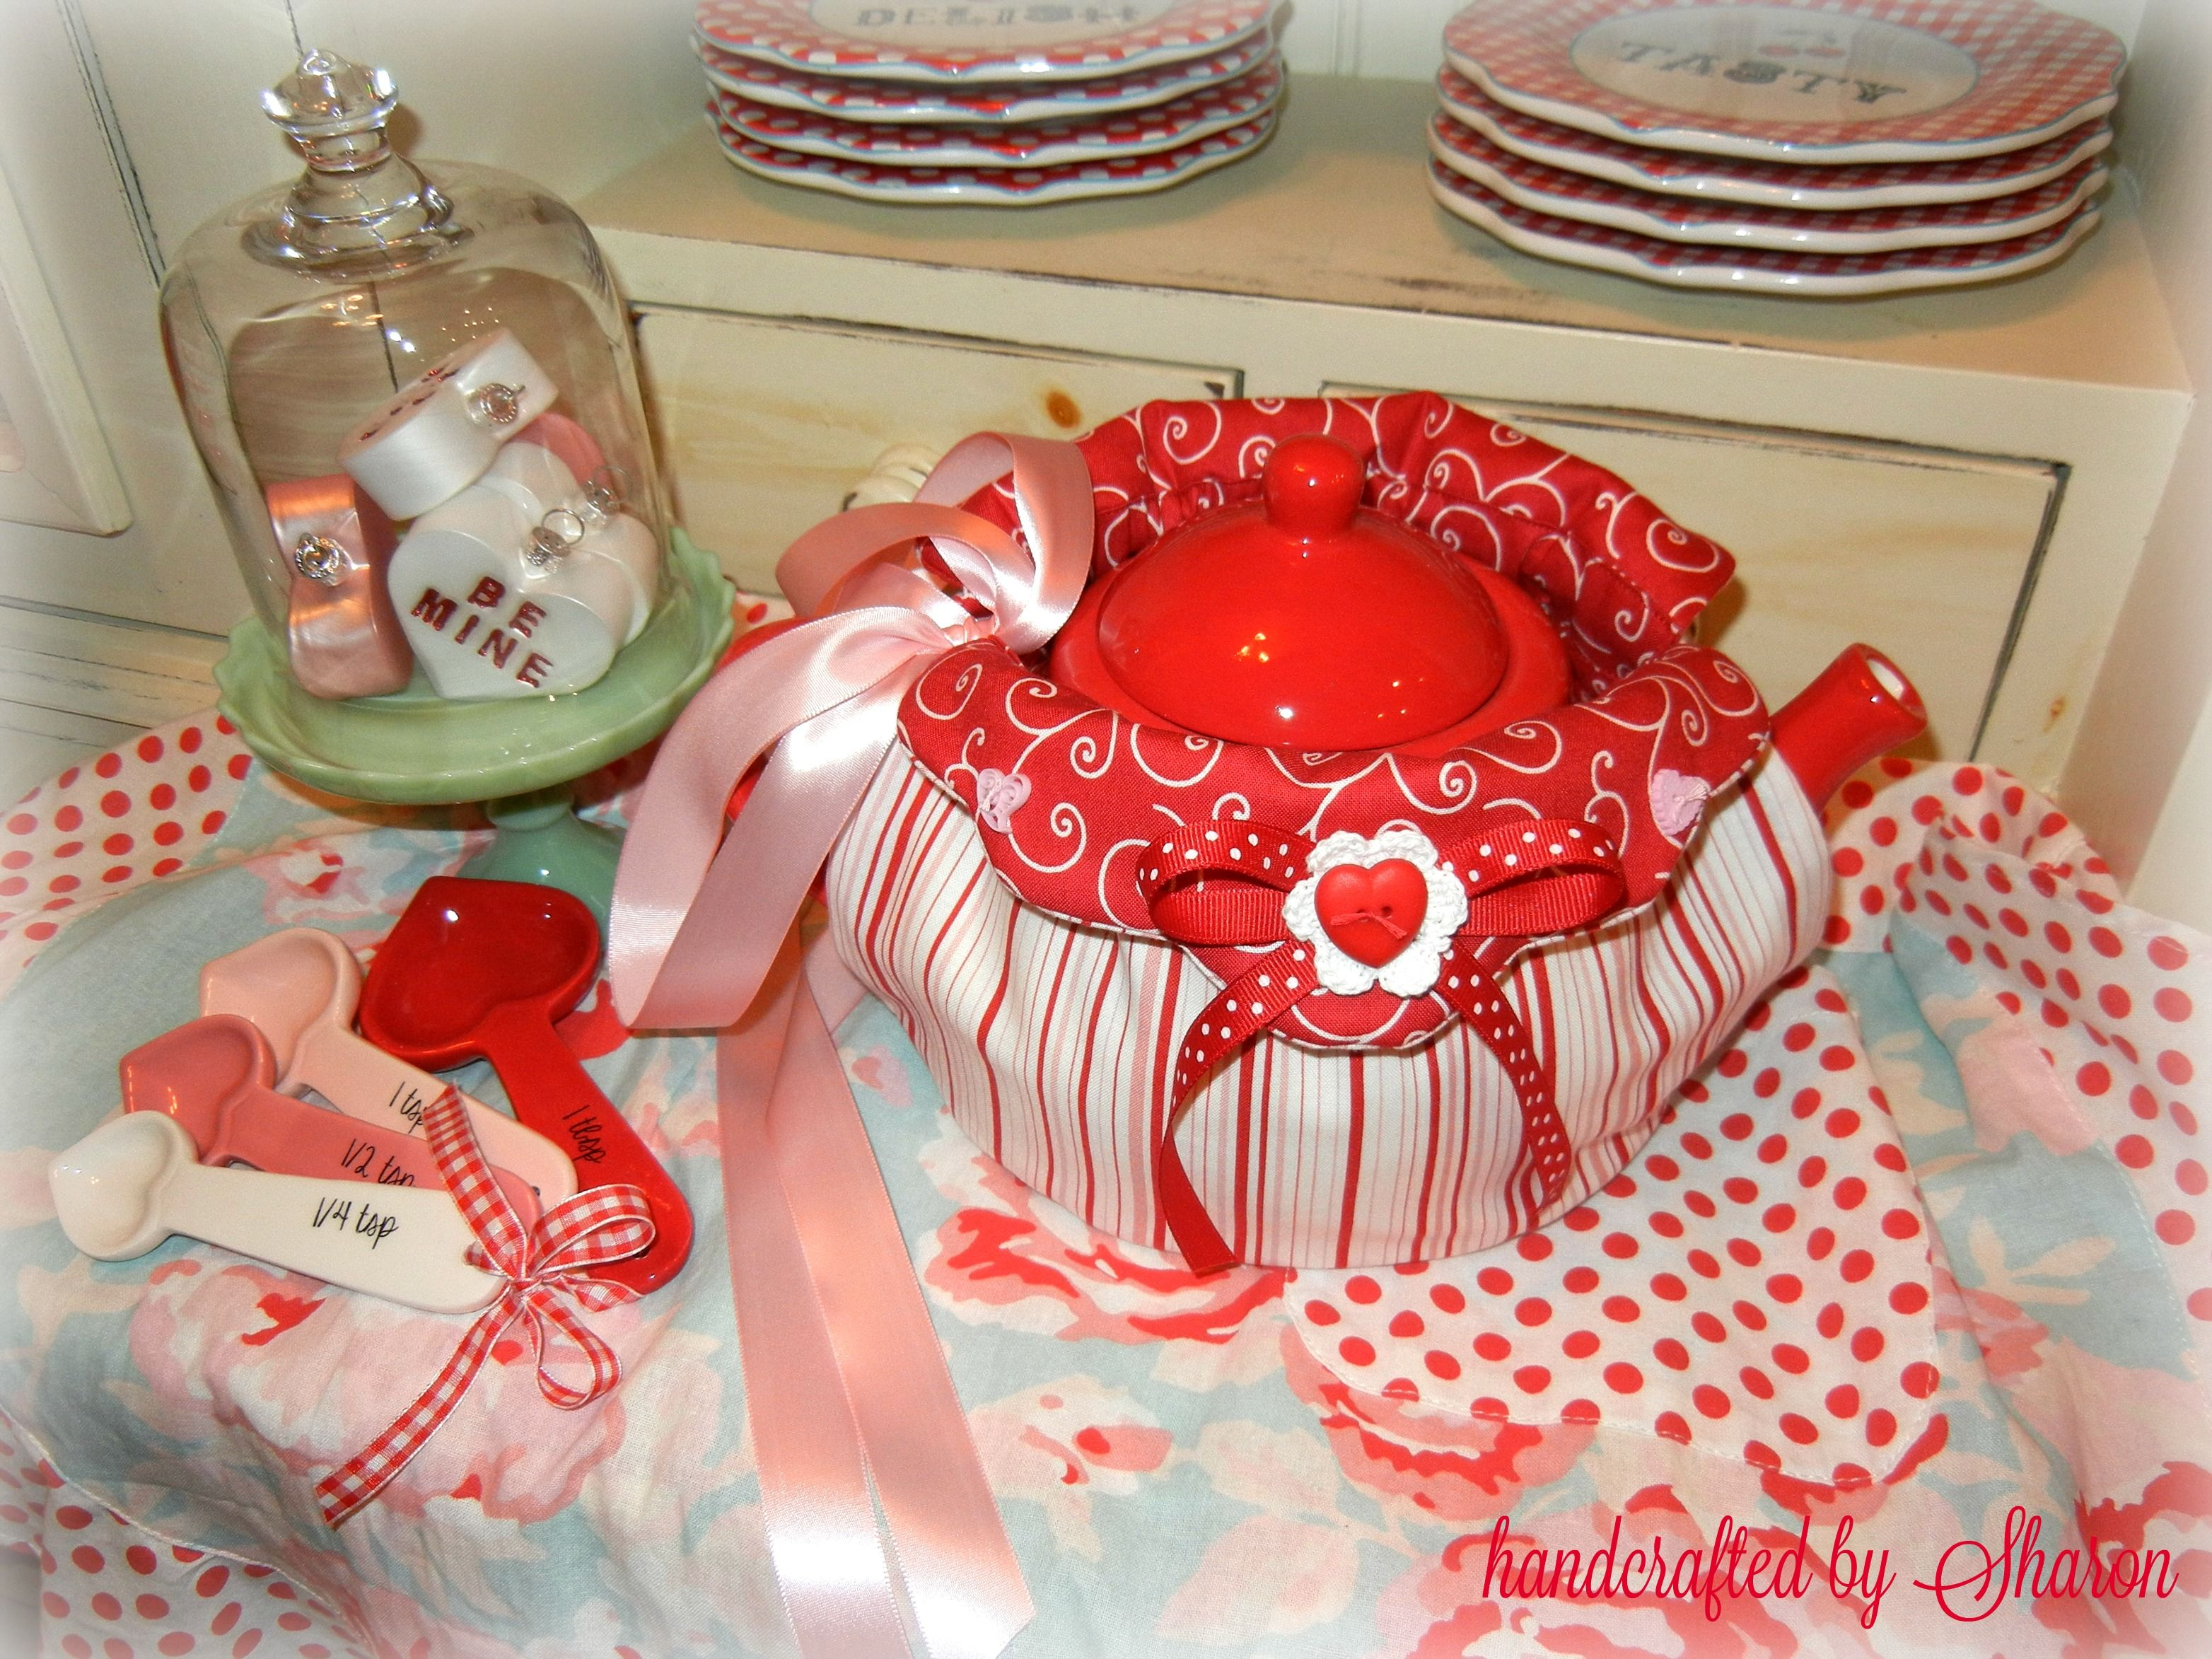 My hugs u kisses stripe valentineus tea cosy handcrafted by